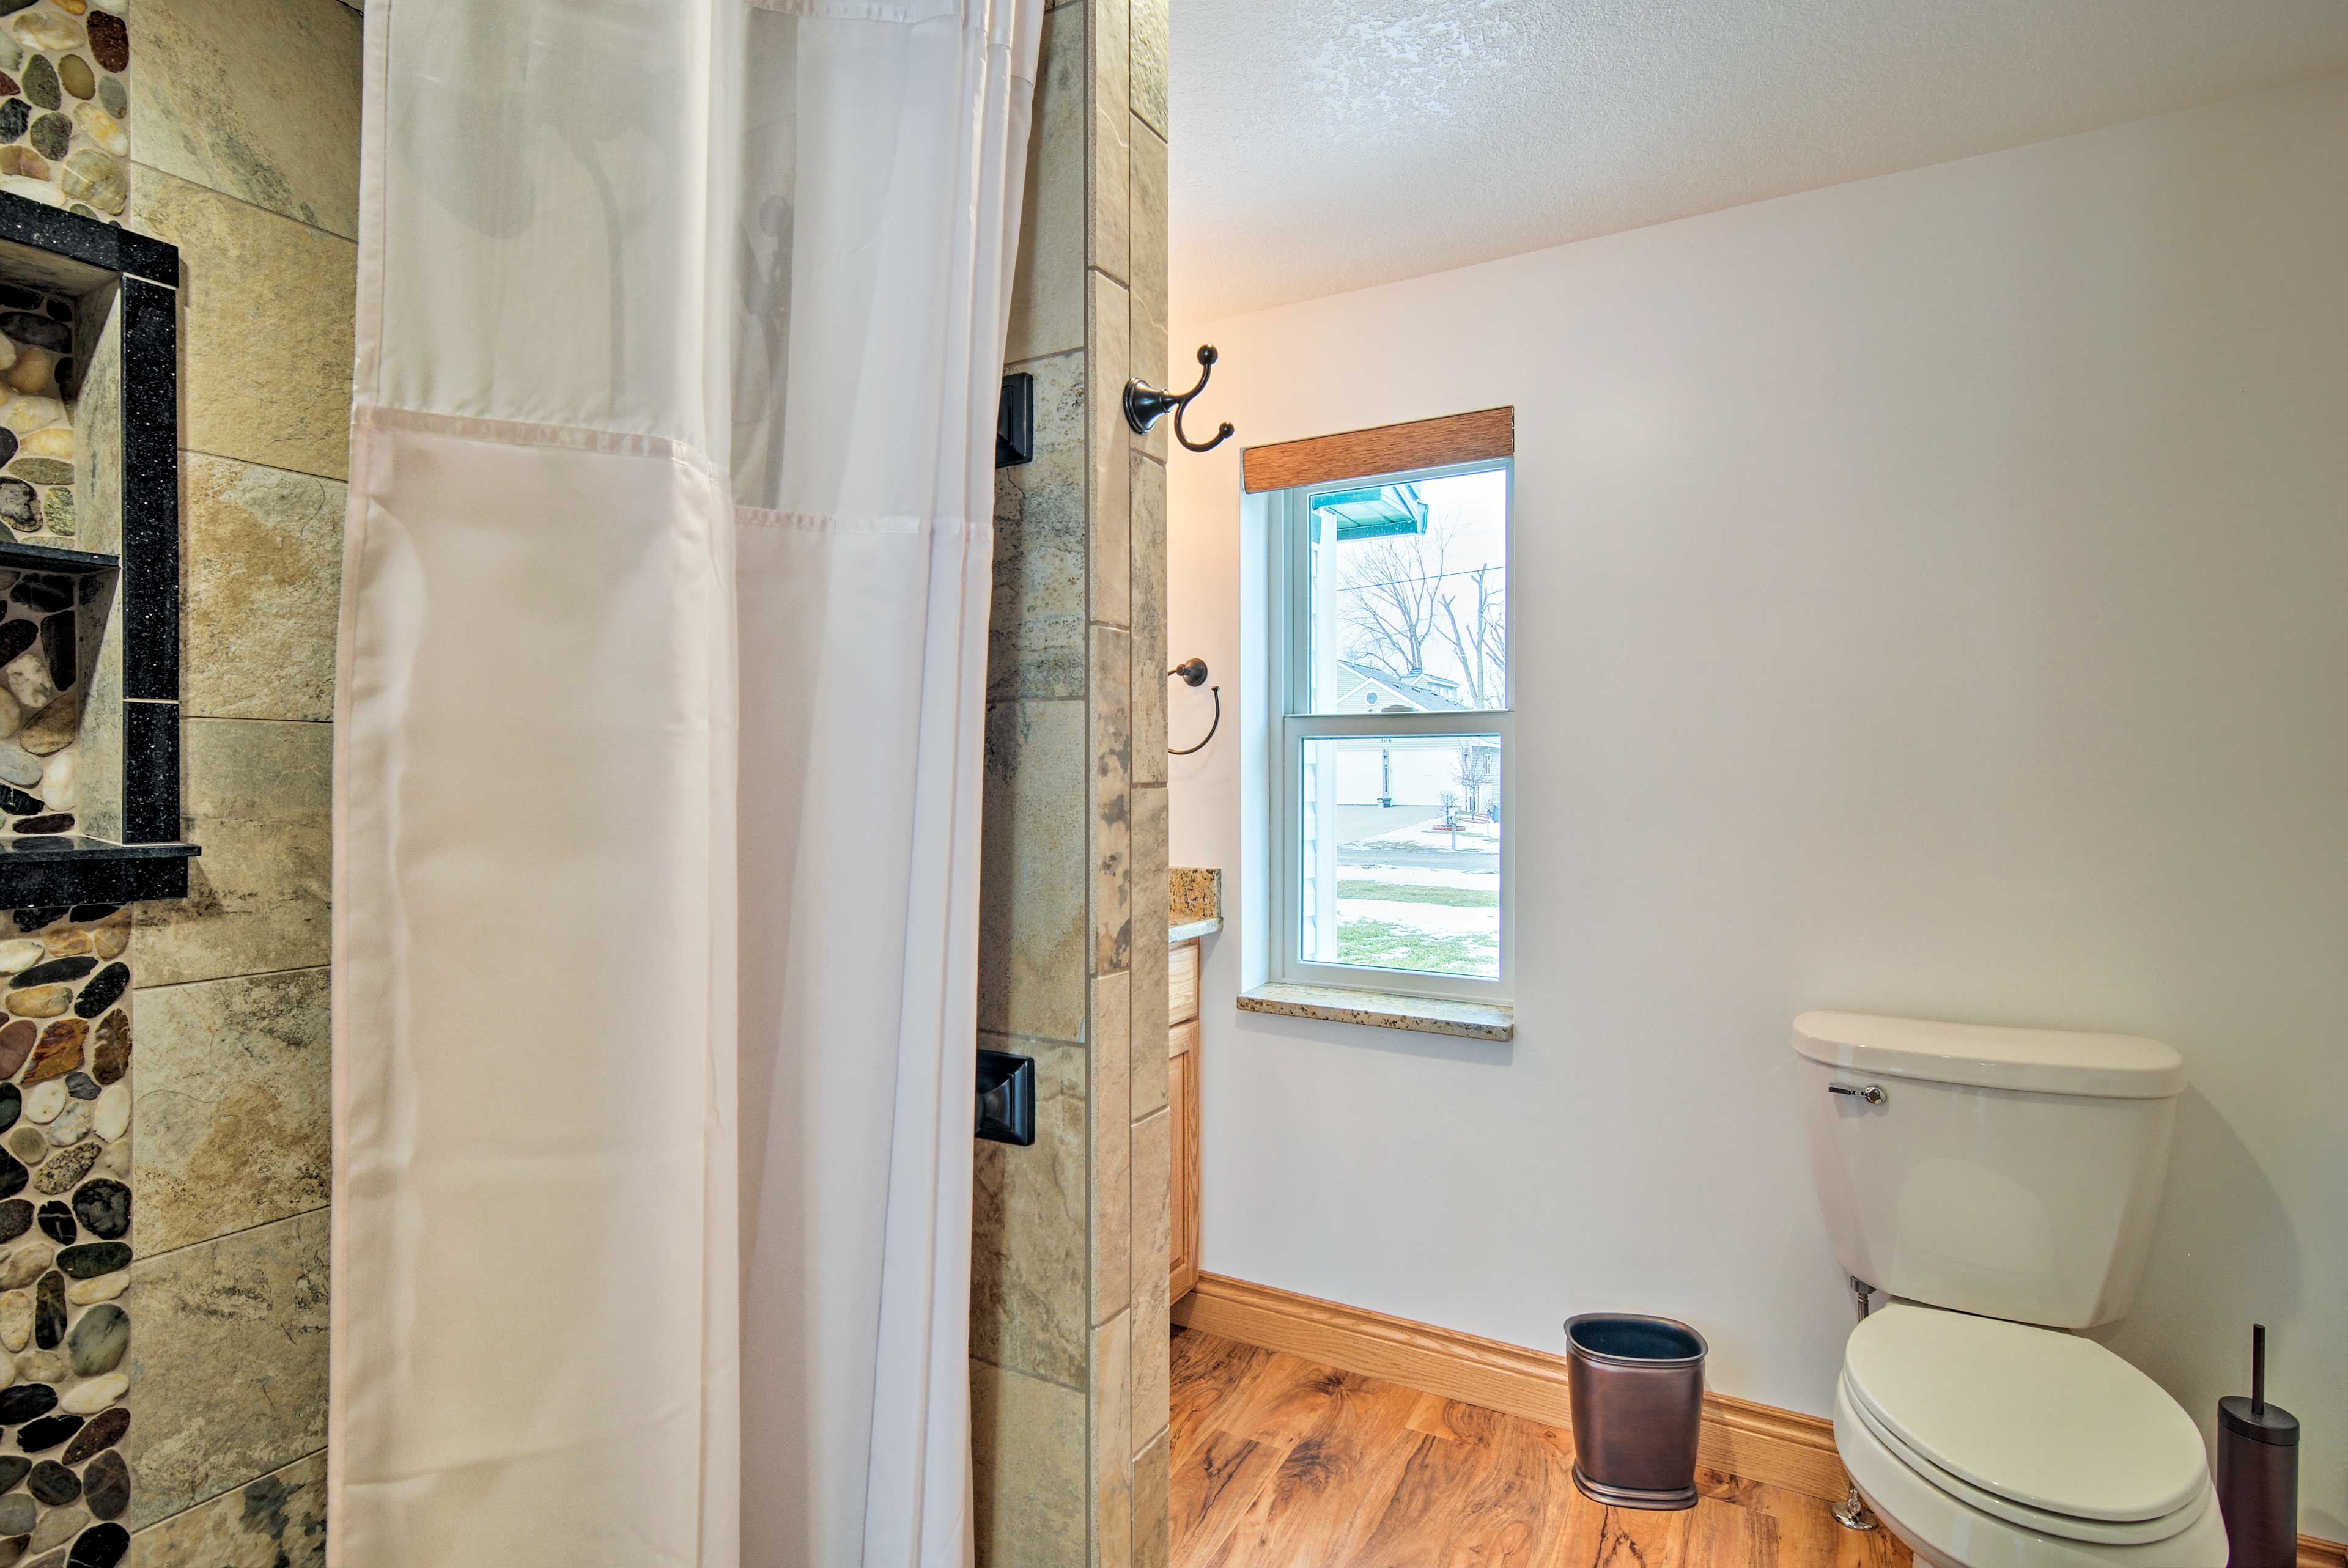 Having 2 bathrooms is important and this home fits the bill.